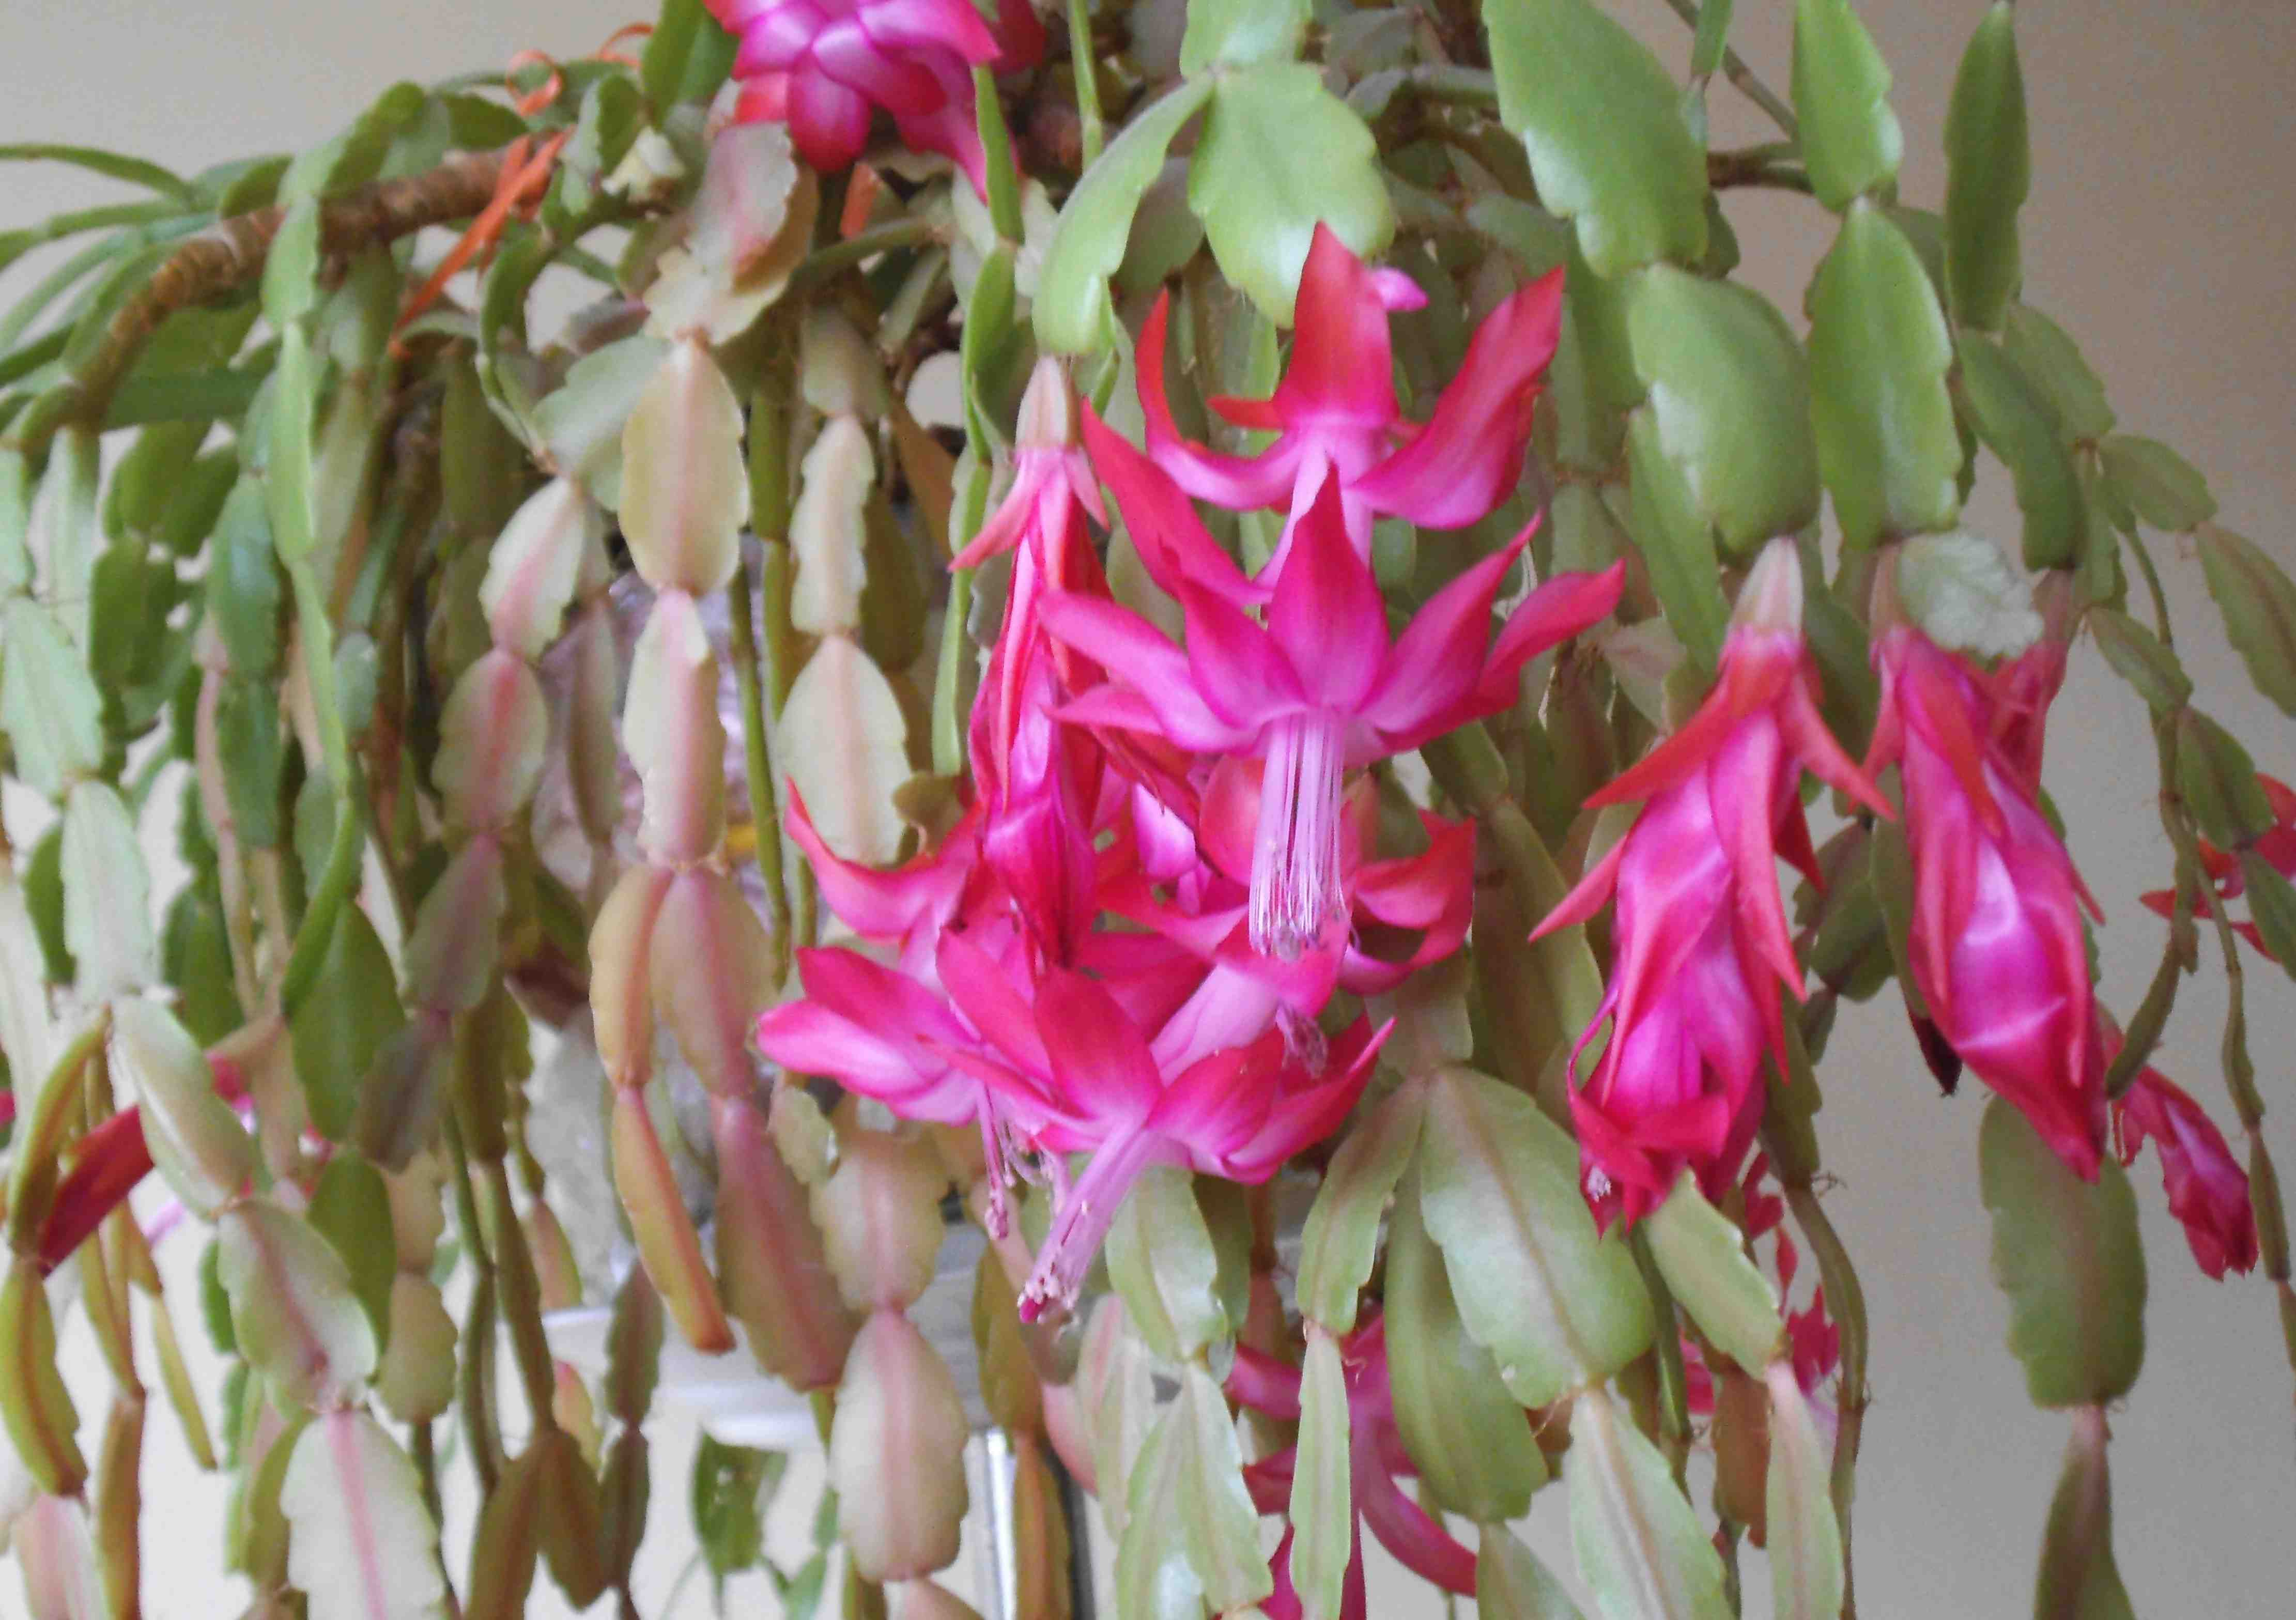 Christmas Cactus Blooming.When Your Christmas Cactus Blooms Too Early Laidback Gardener